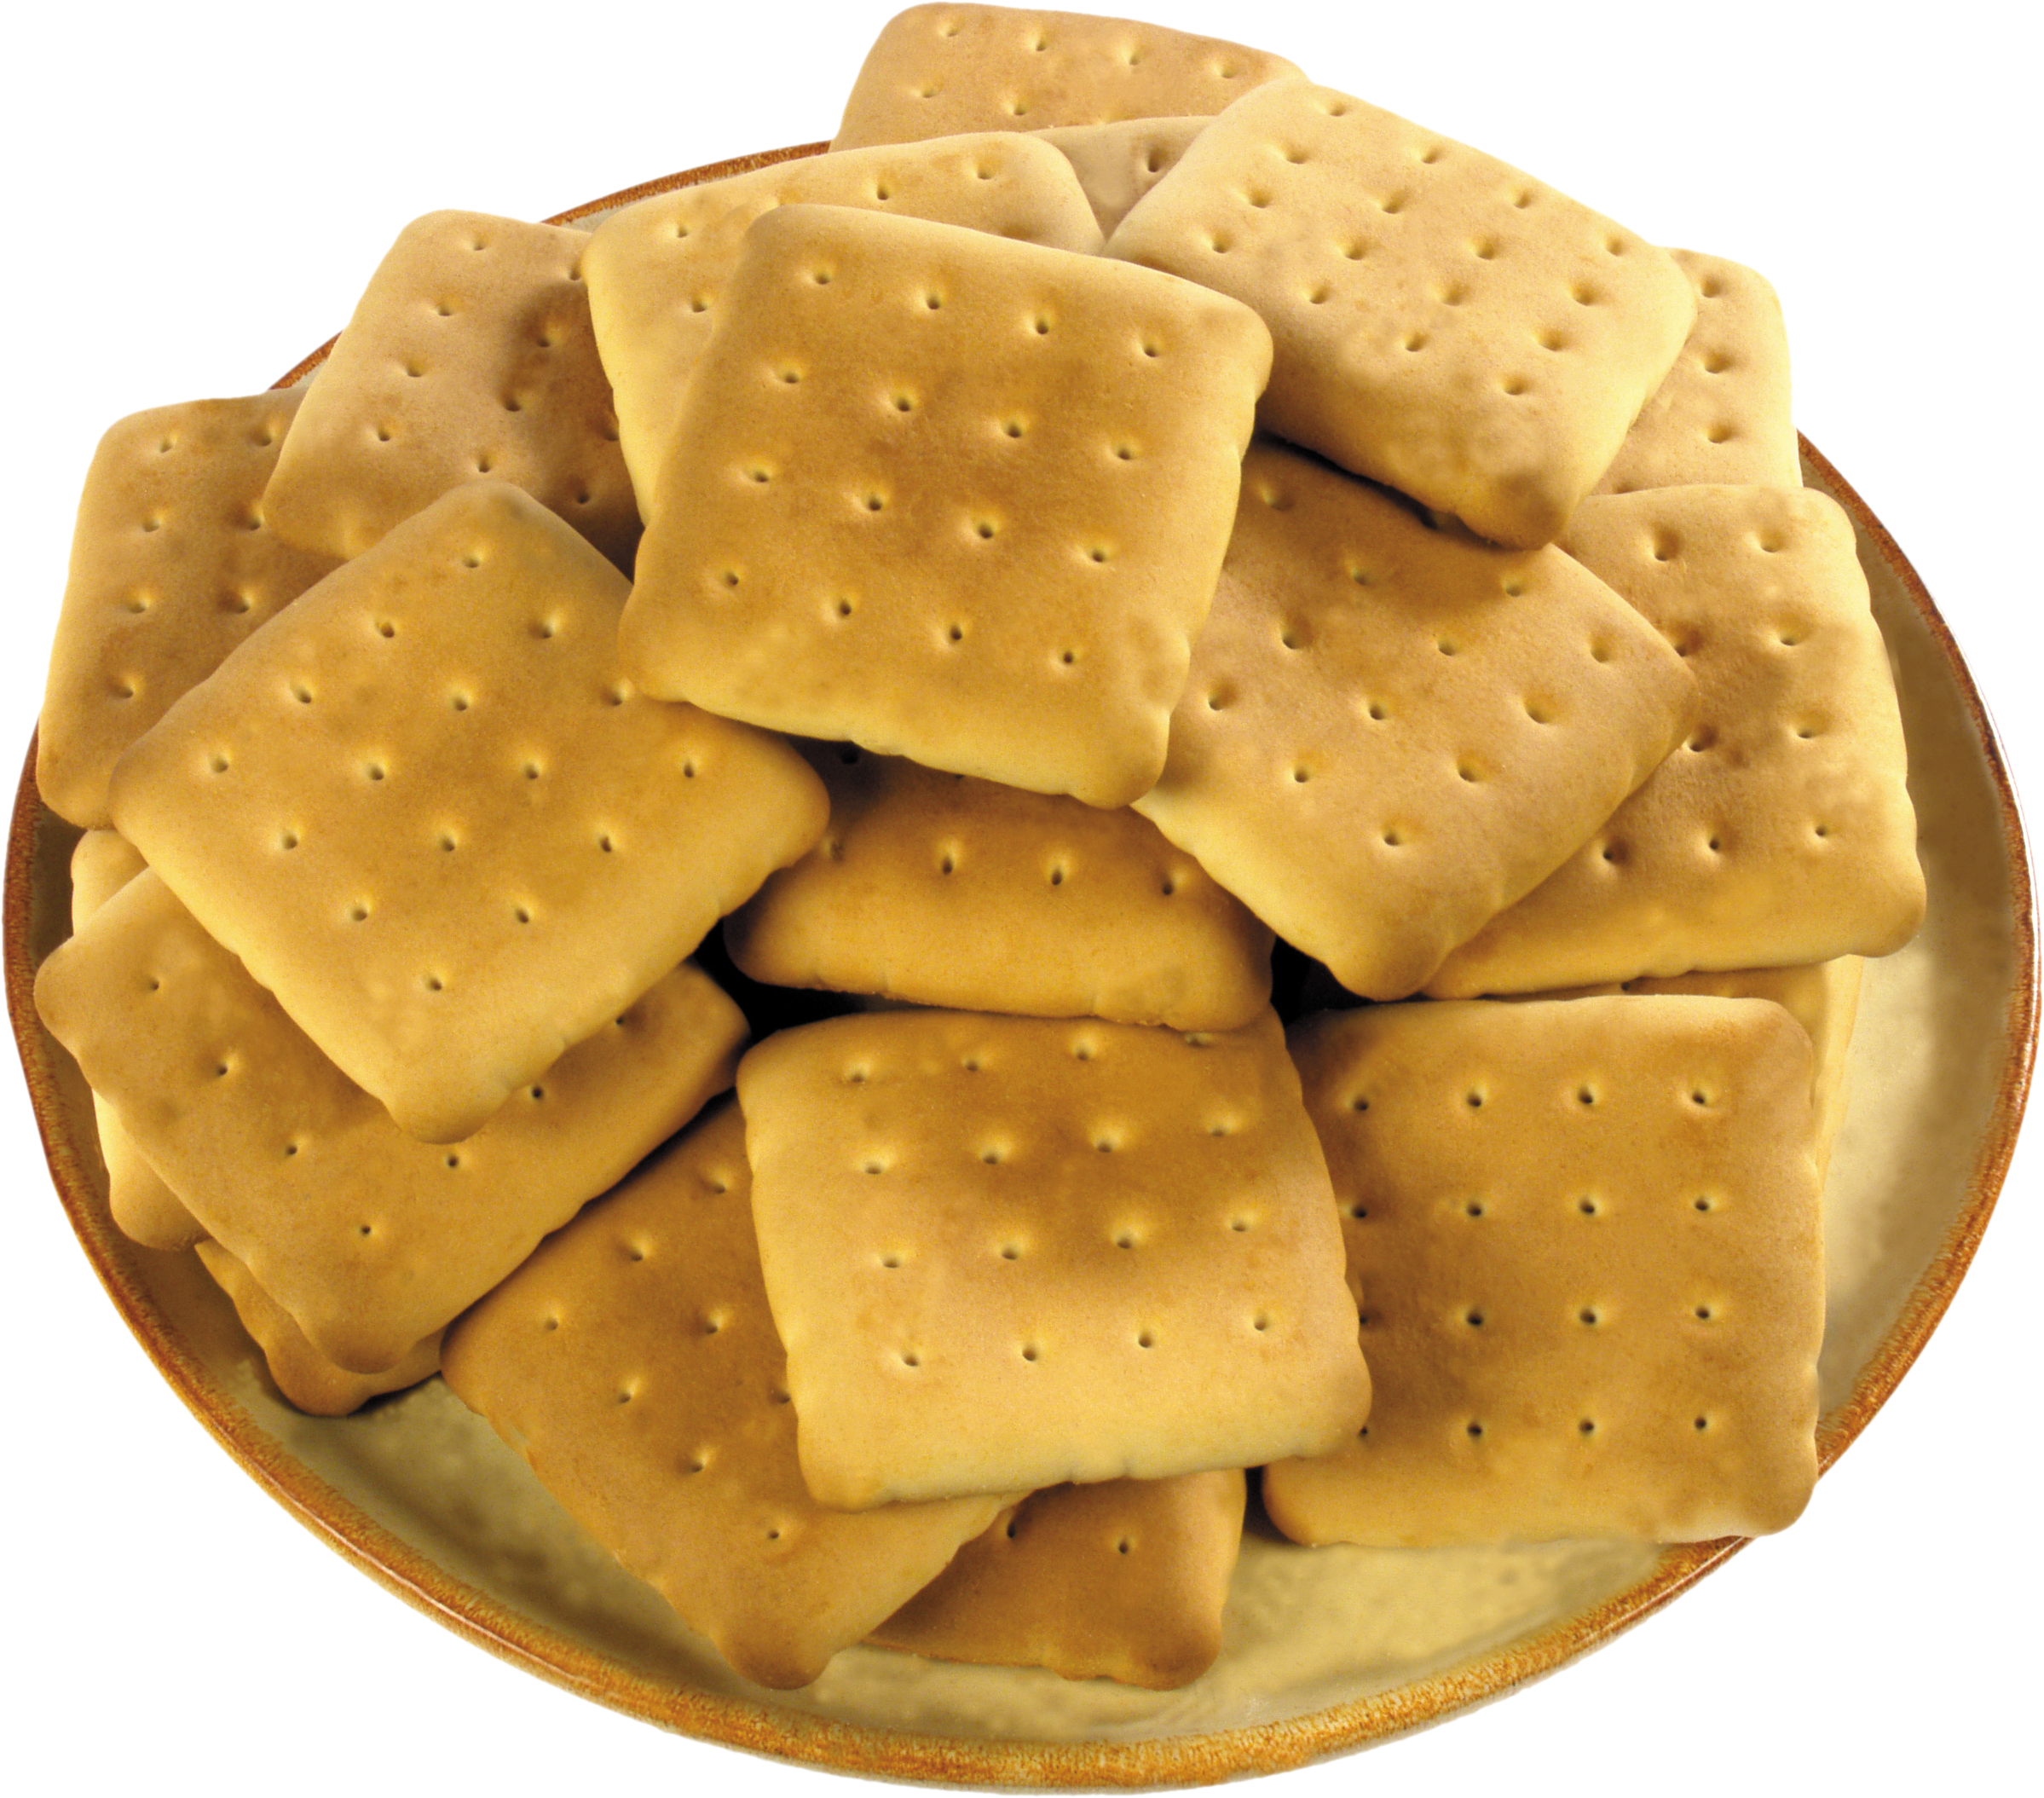 Food clipart cracker. Biscuits png image purepng